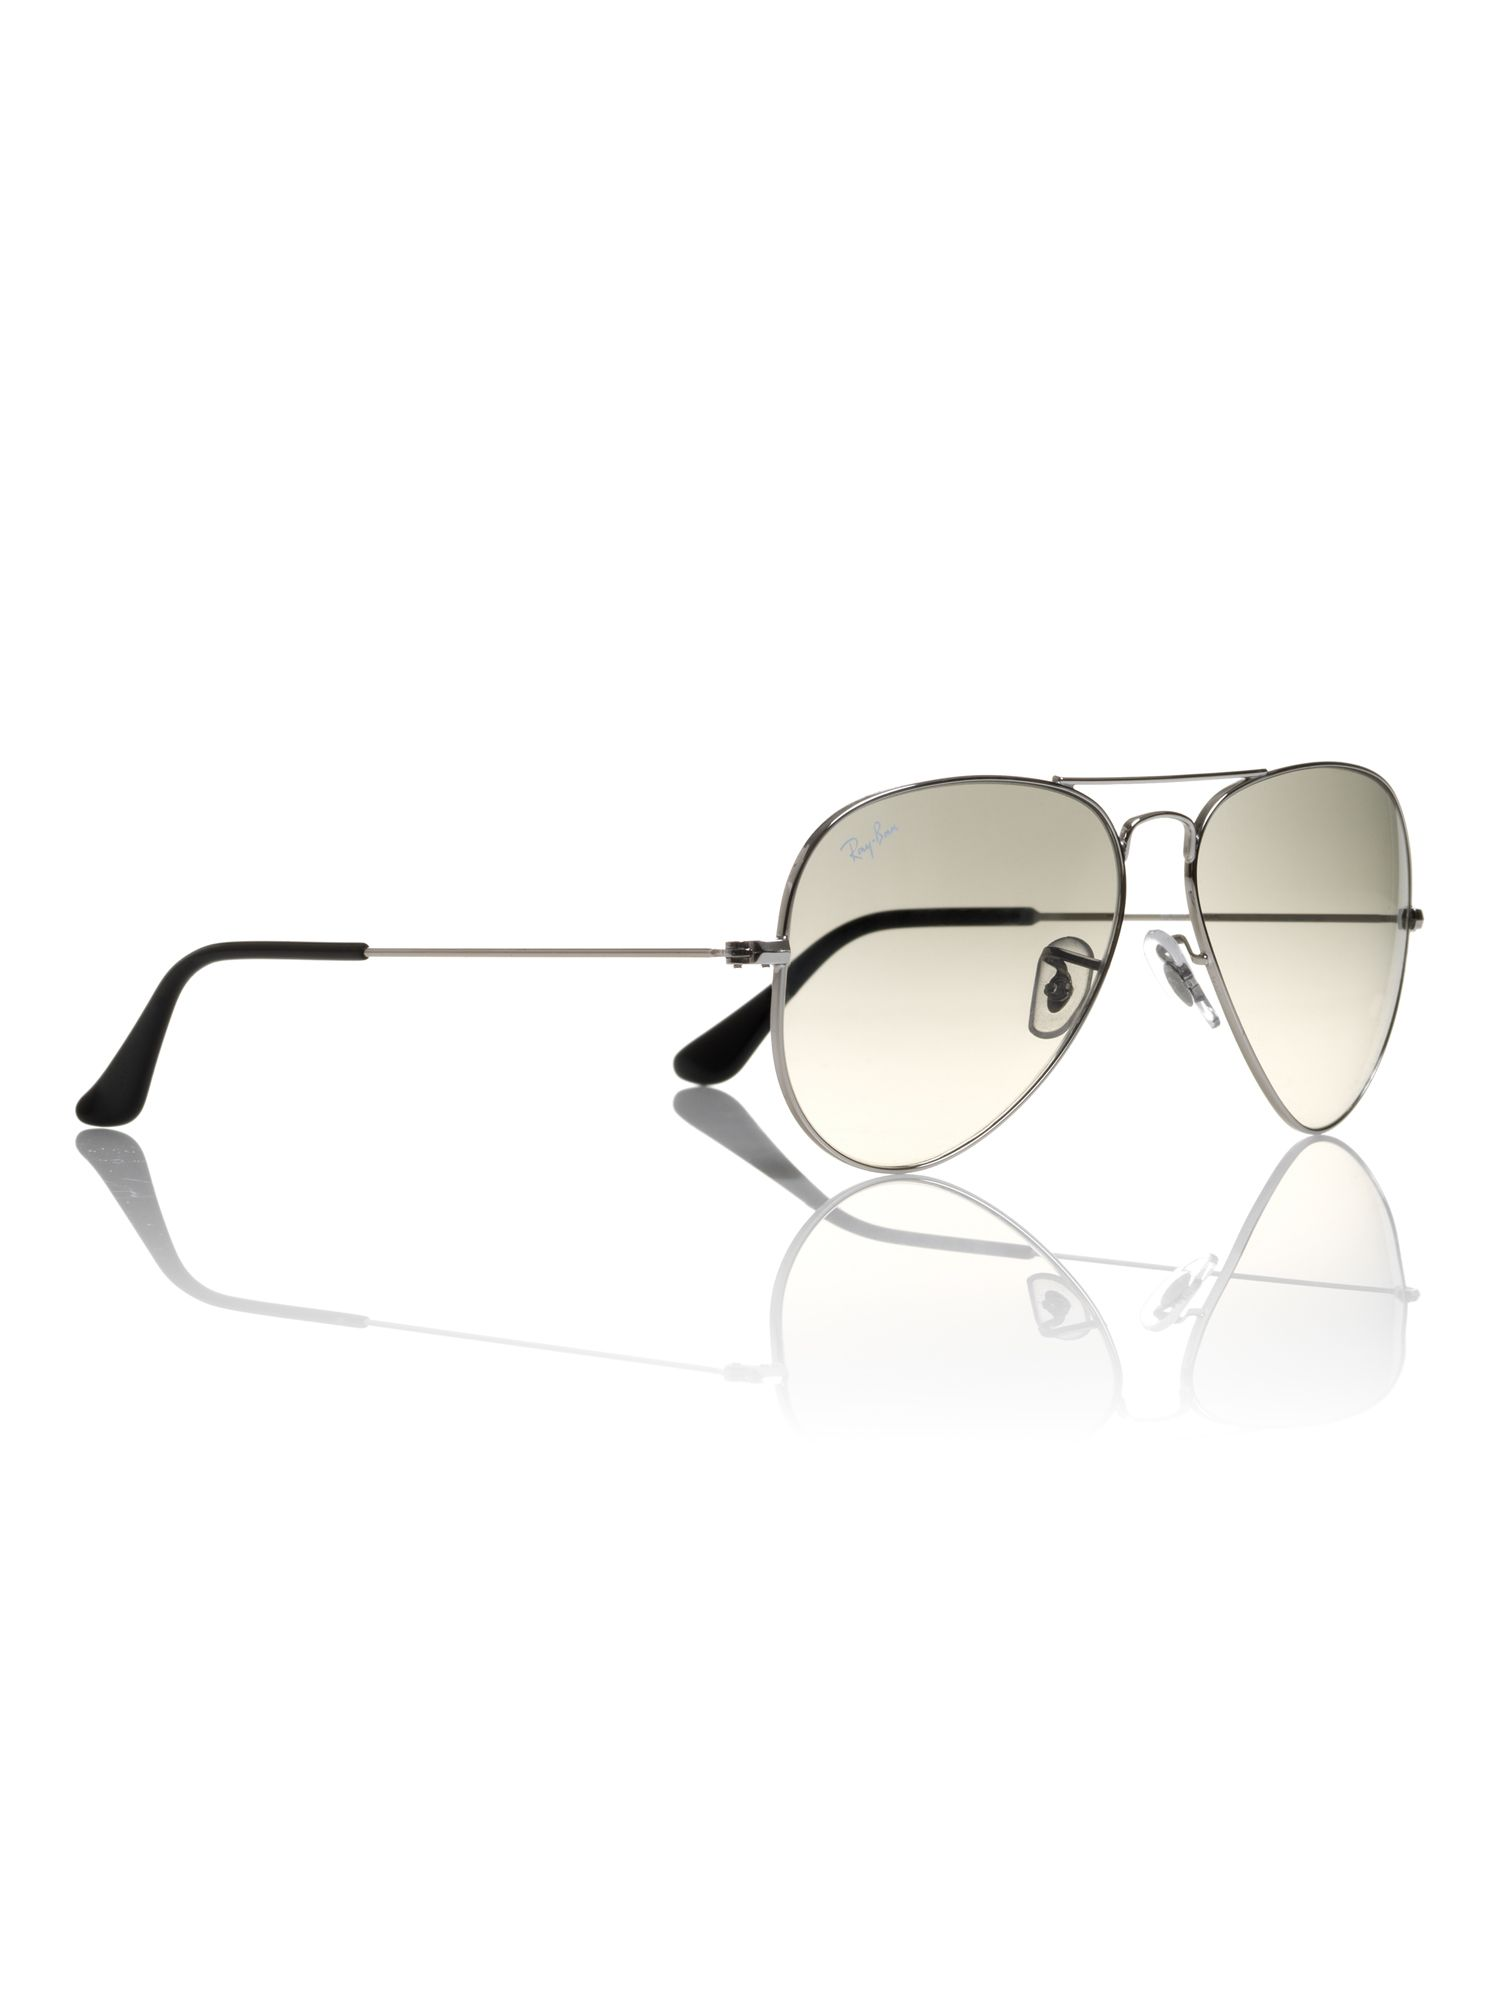 Unisex RB3025 003/32 L.Metal Aviator Sunglasses